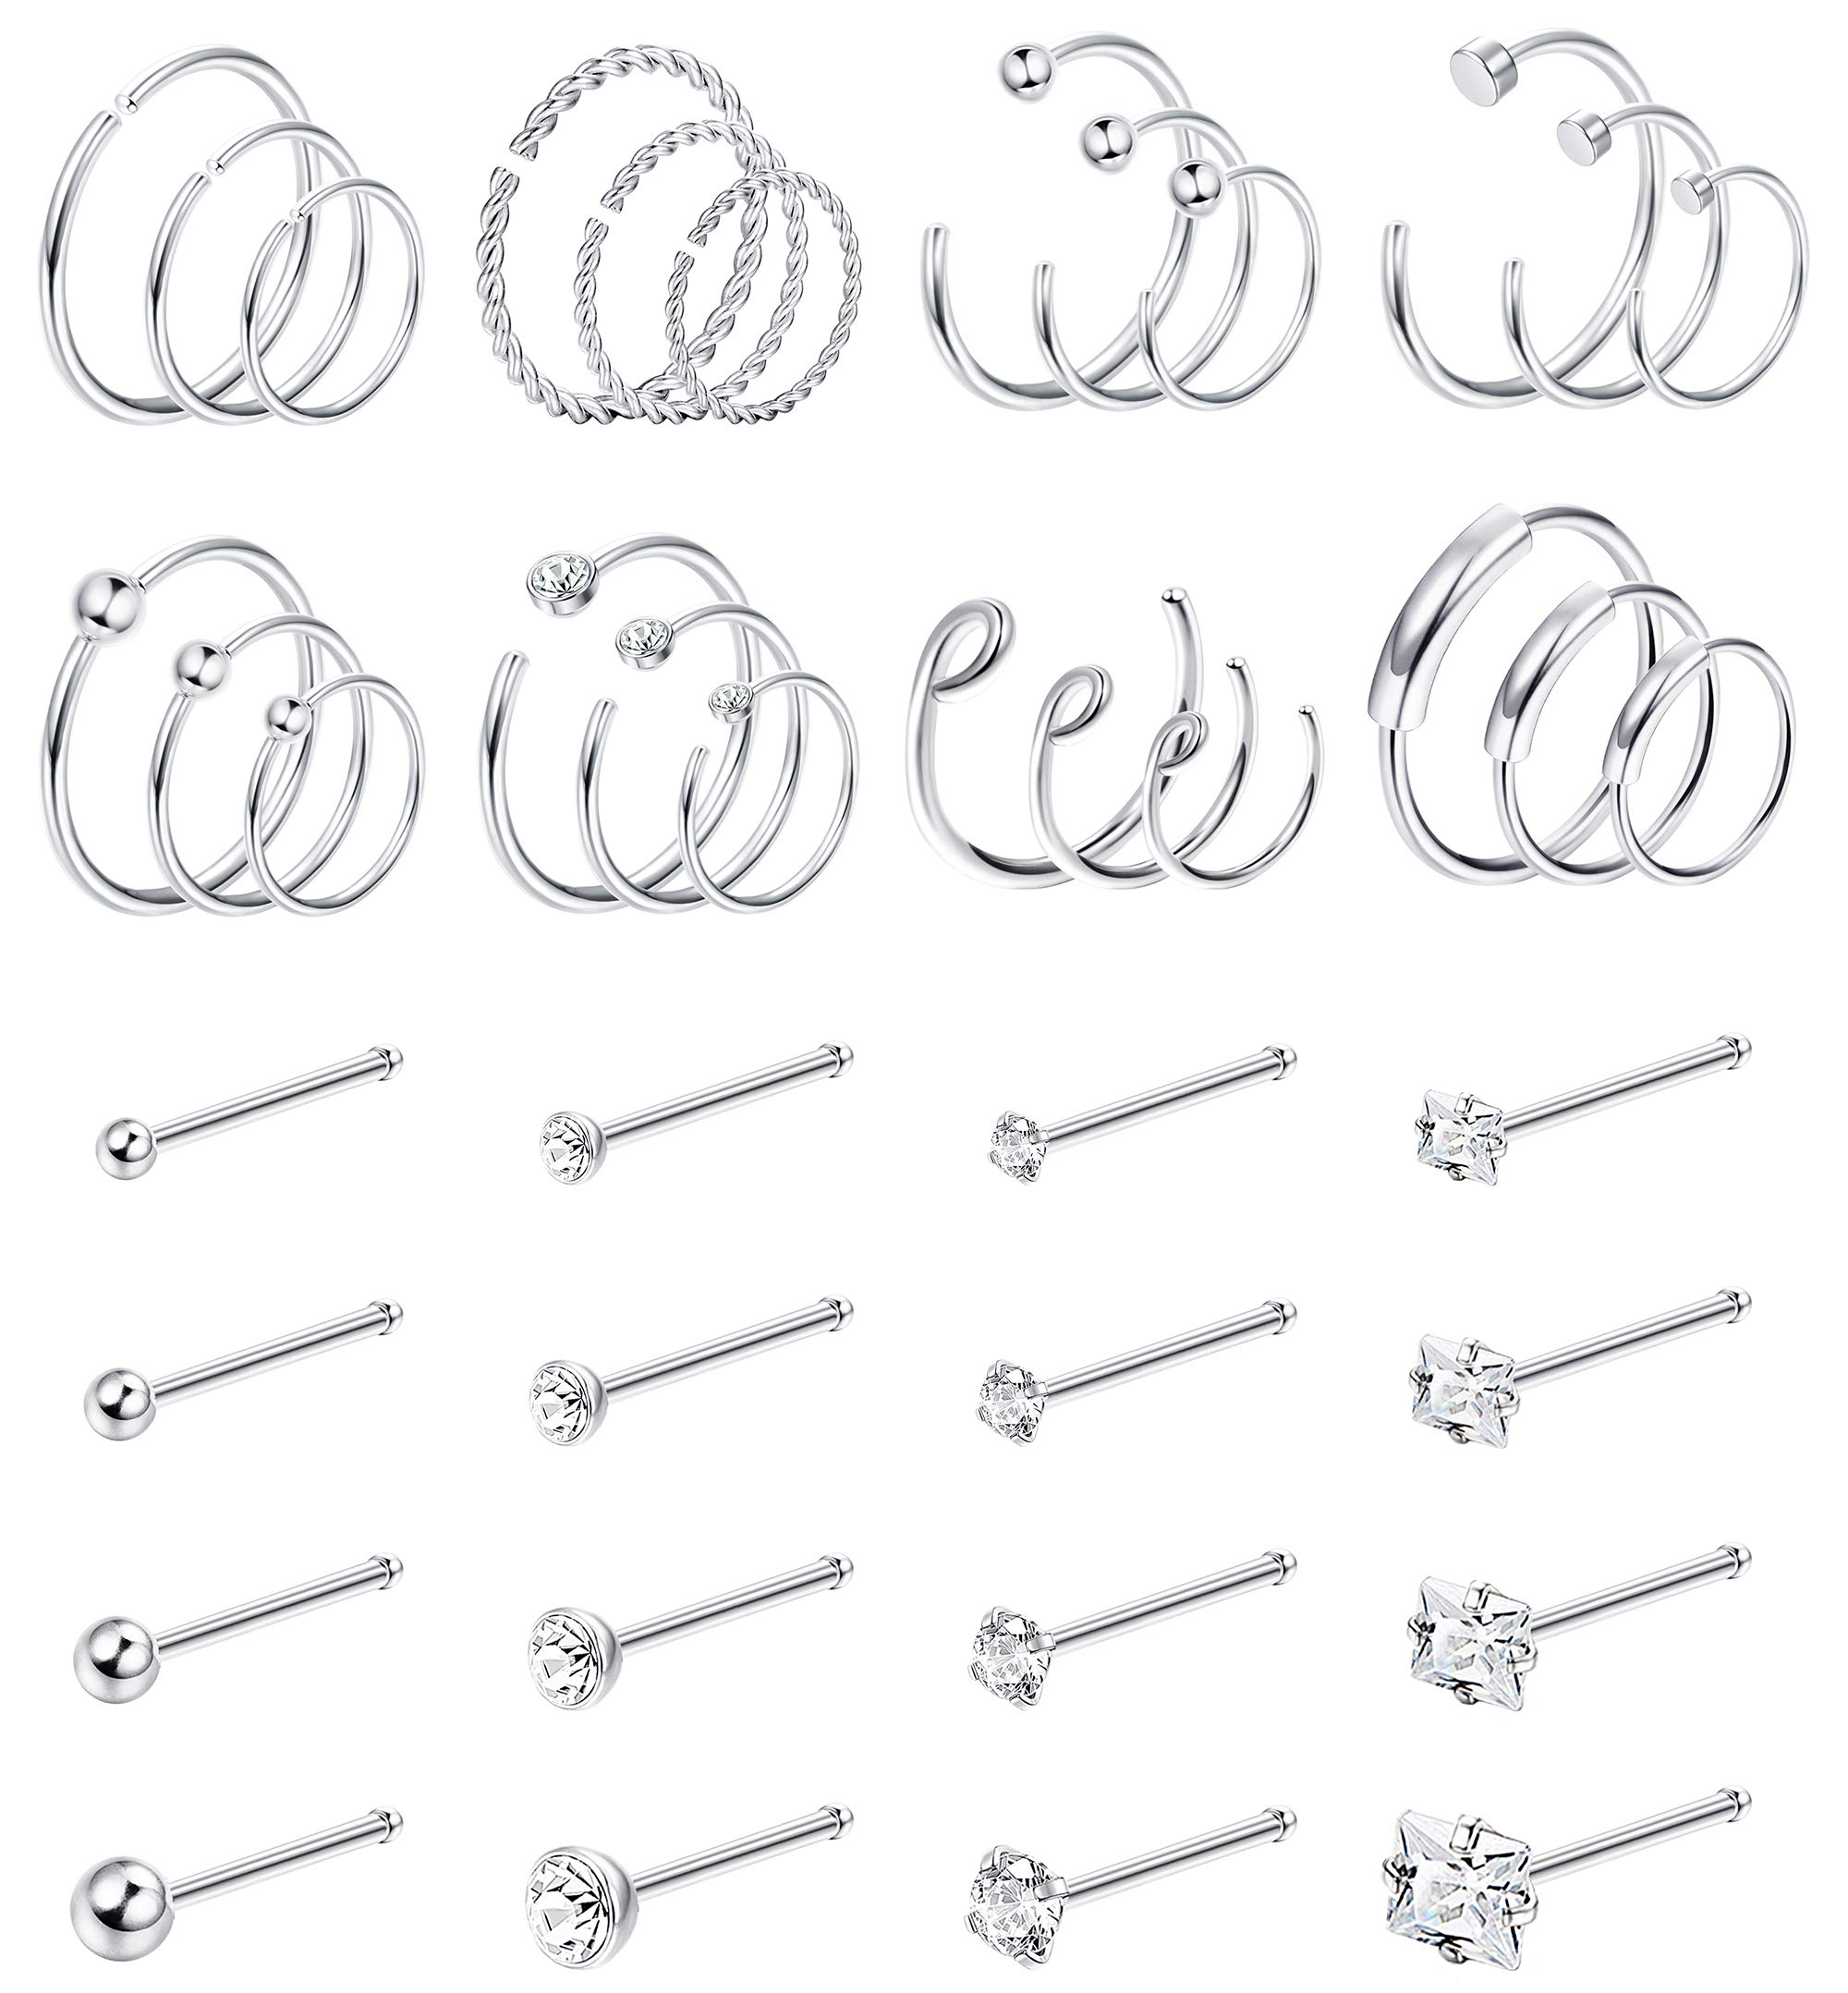 Jstyle 40Pcs C-Shaped Nose Ring Hoop for Mens Women Bone-Shaped Nose Studs Stainless Steel Nose Piercing Cartilage Tragus Piercing Jewery Silver Tone by Jstyle